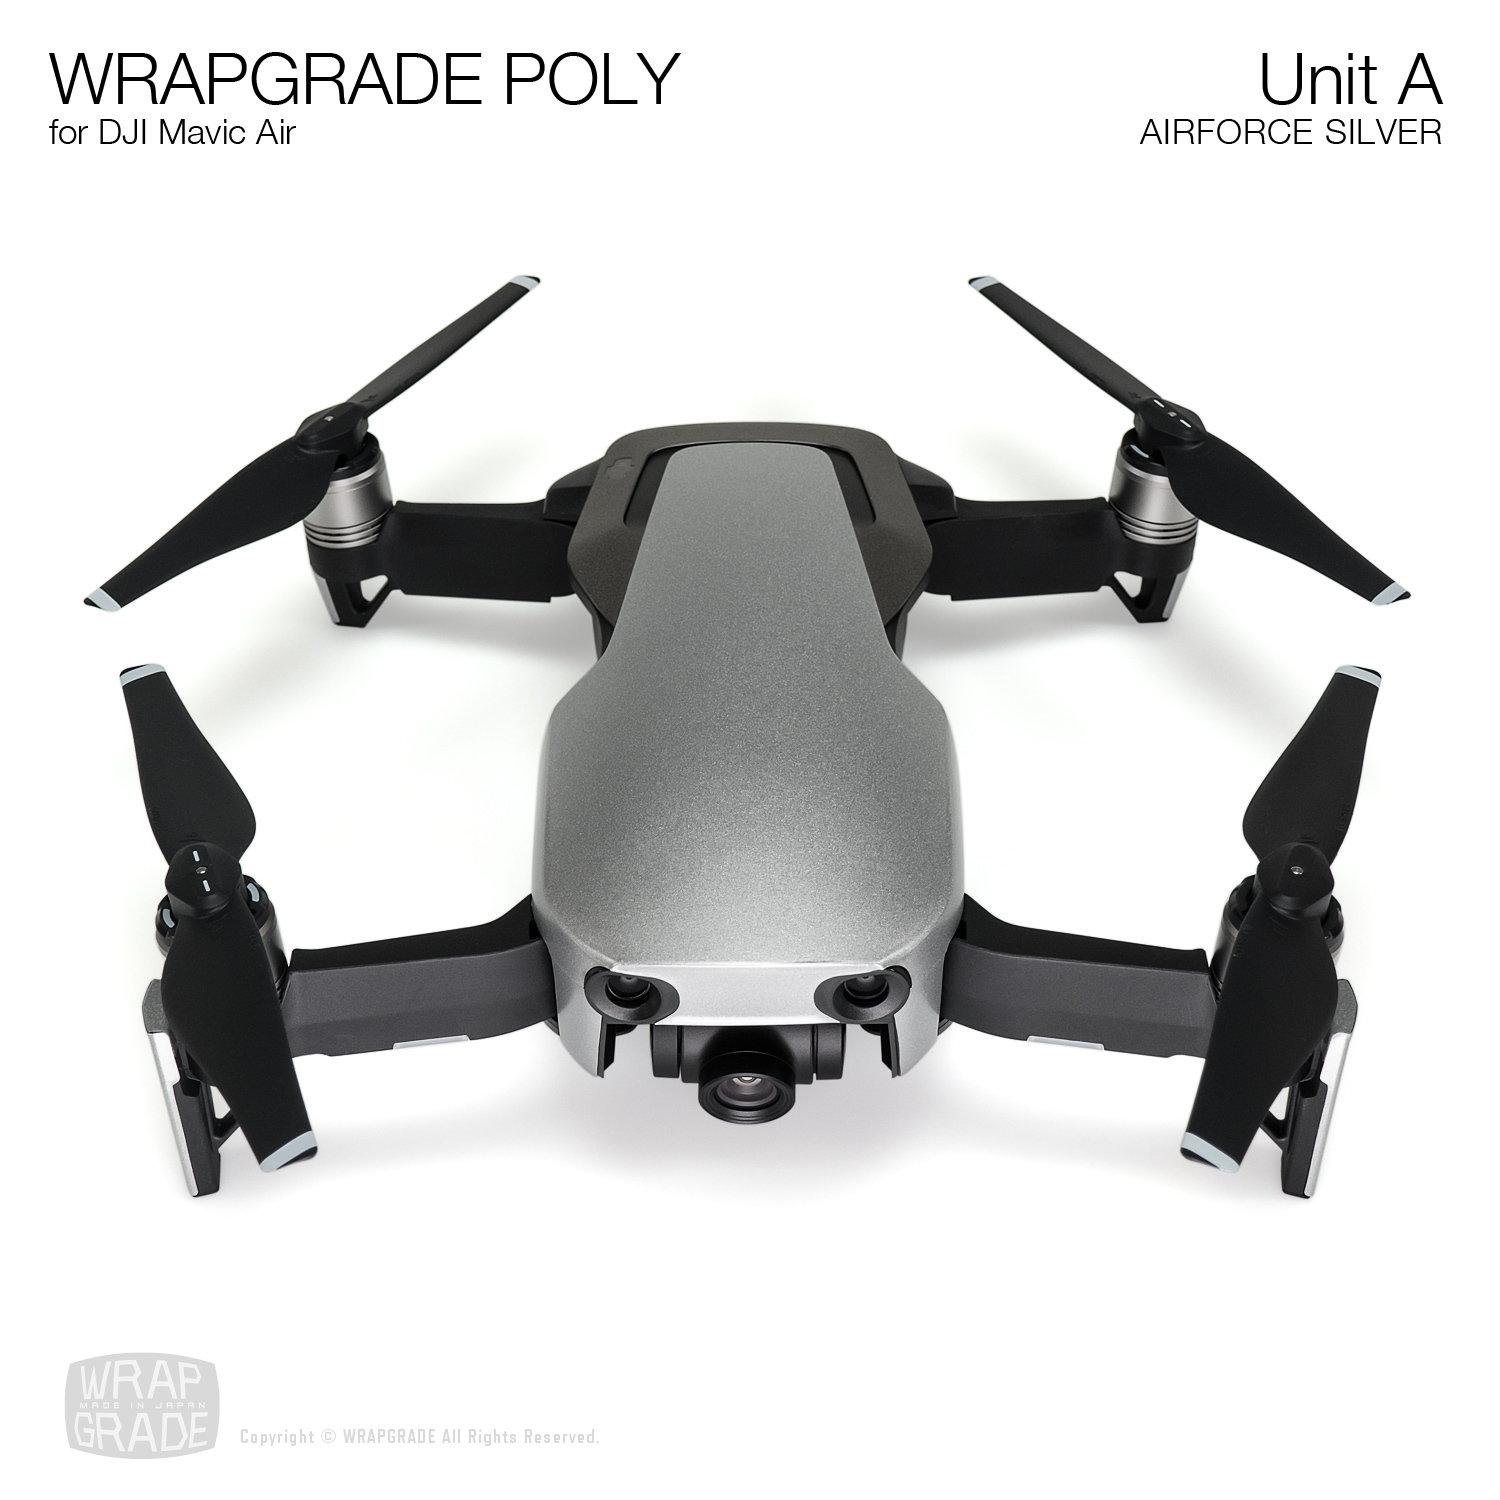 Wrapgrade Poly Skin for DJI Mavic Air | Unit A (AIRFORCE SILVER)